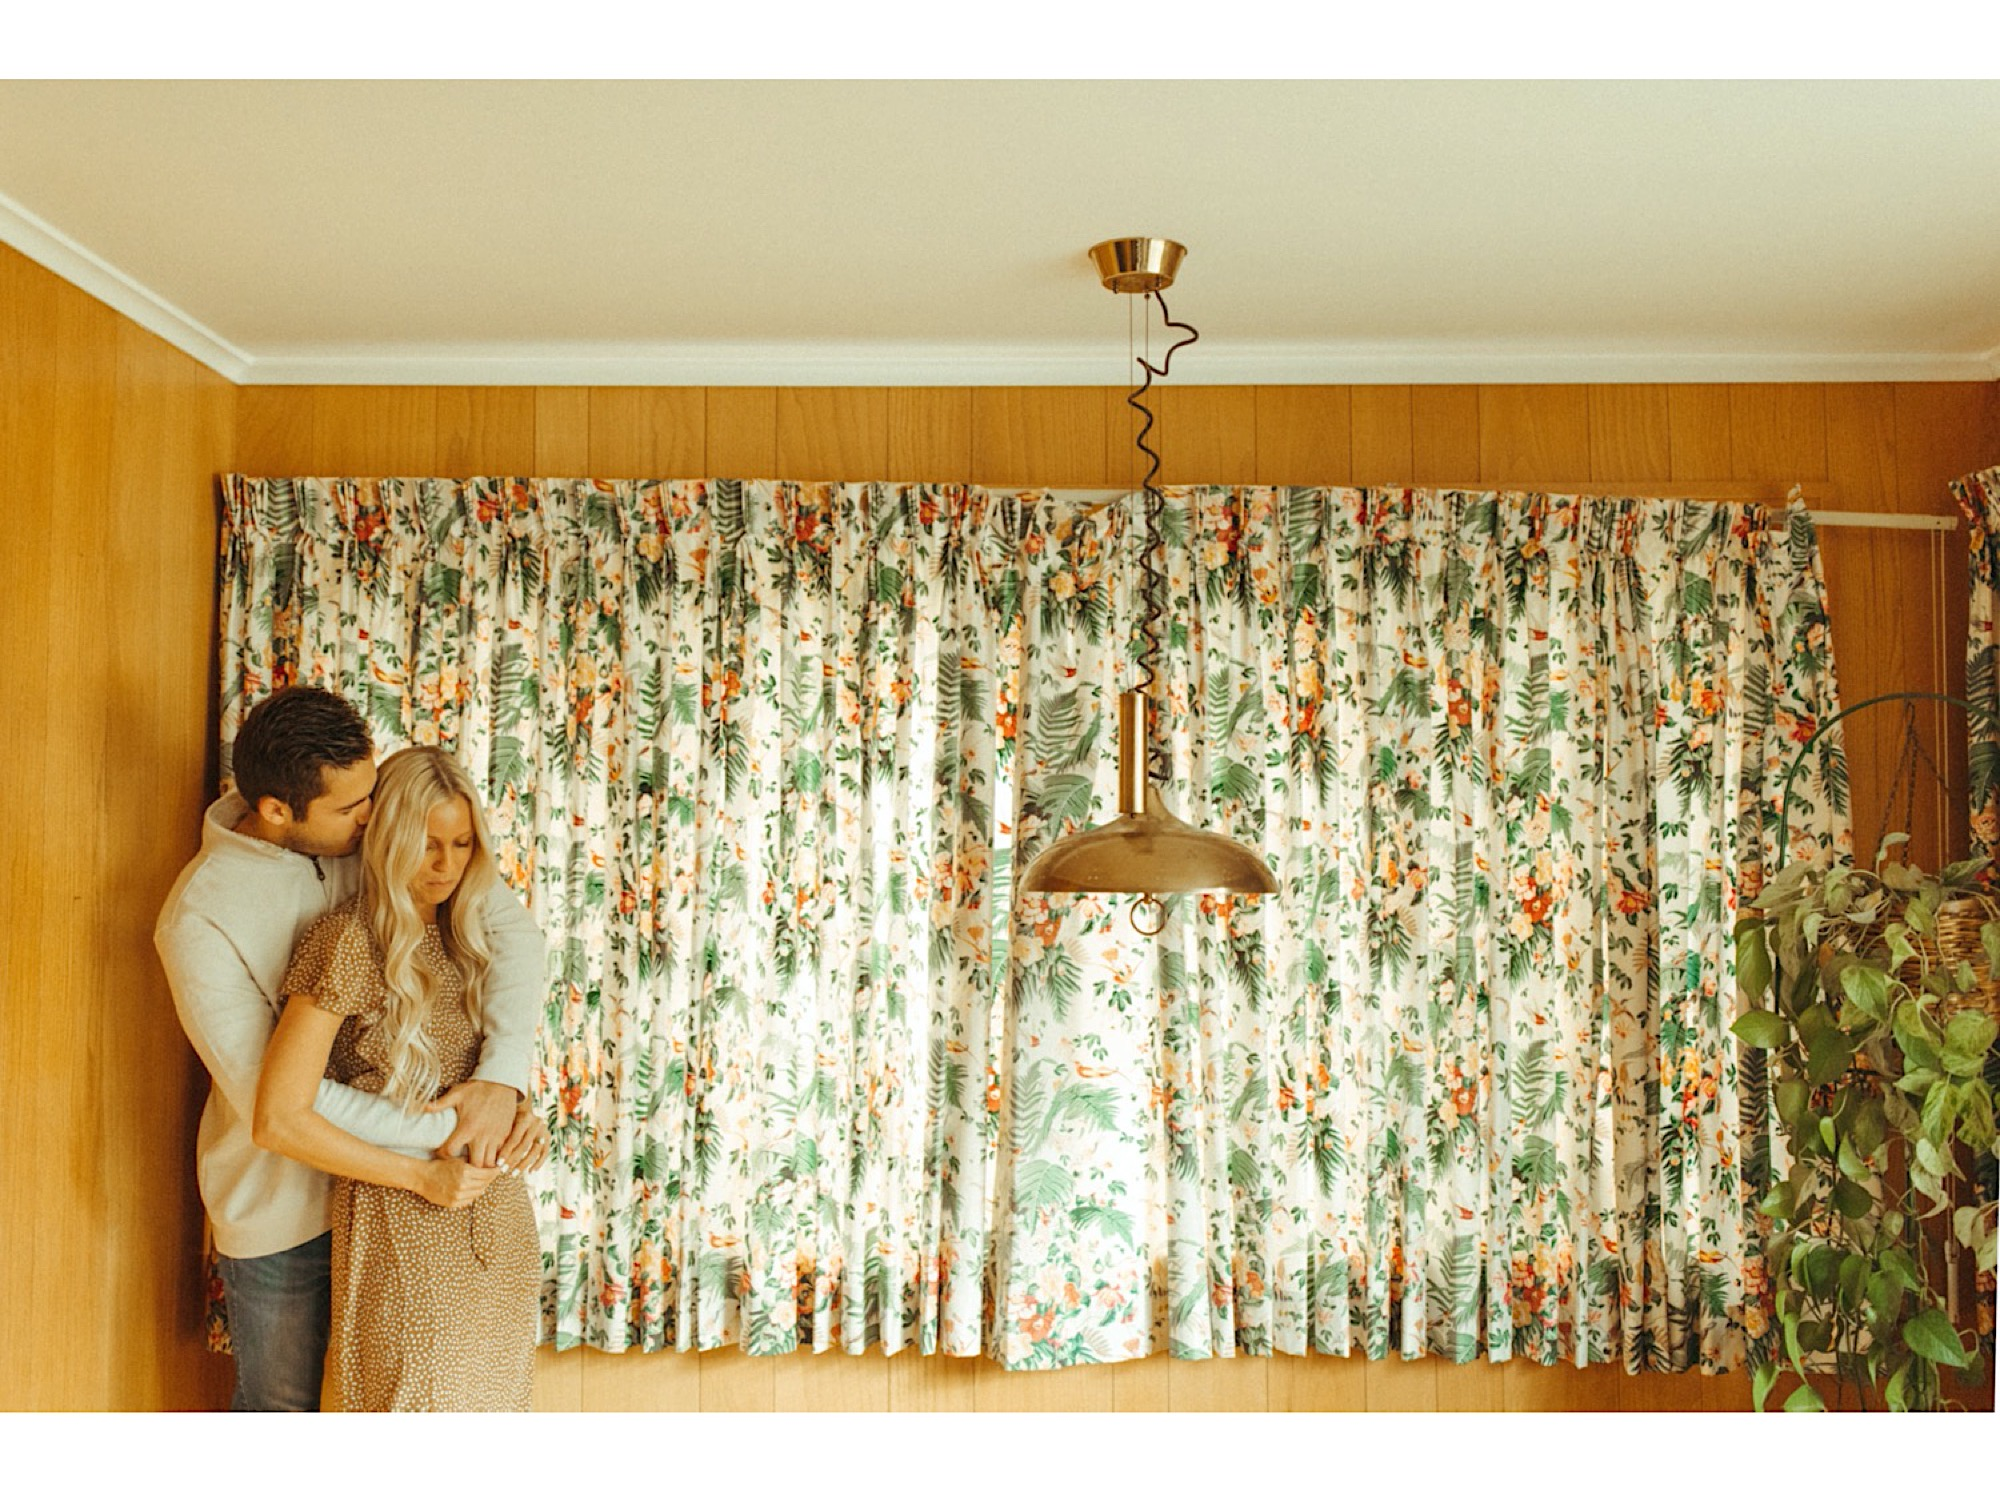 70s inspired vintage engagement shoot